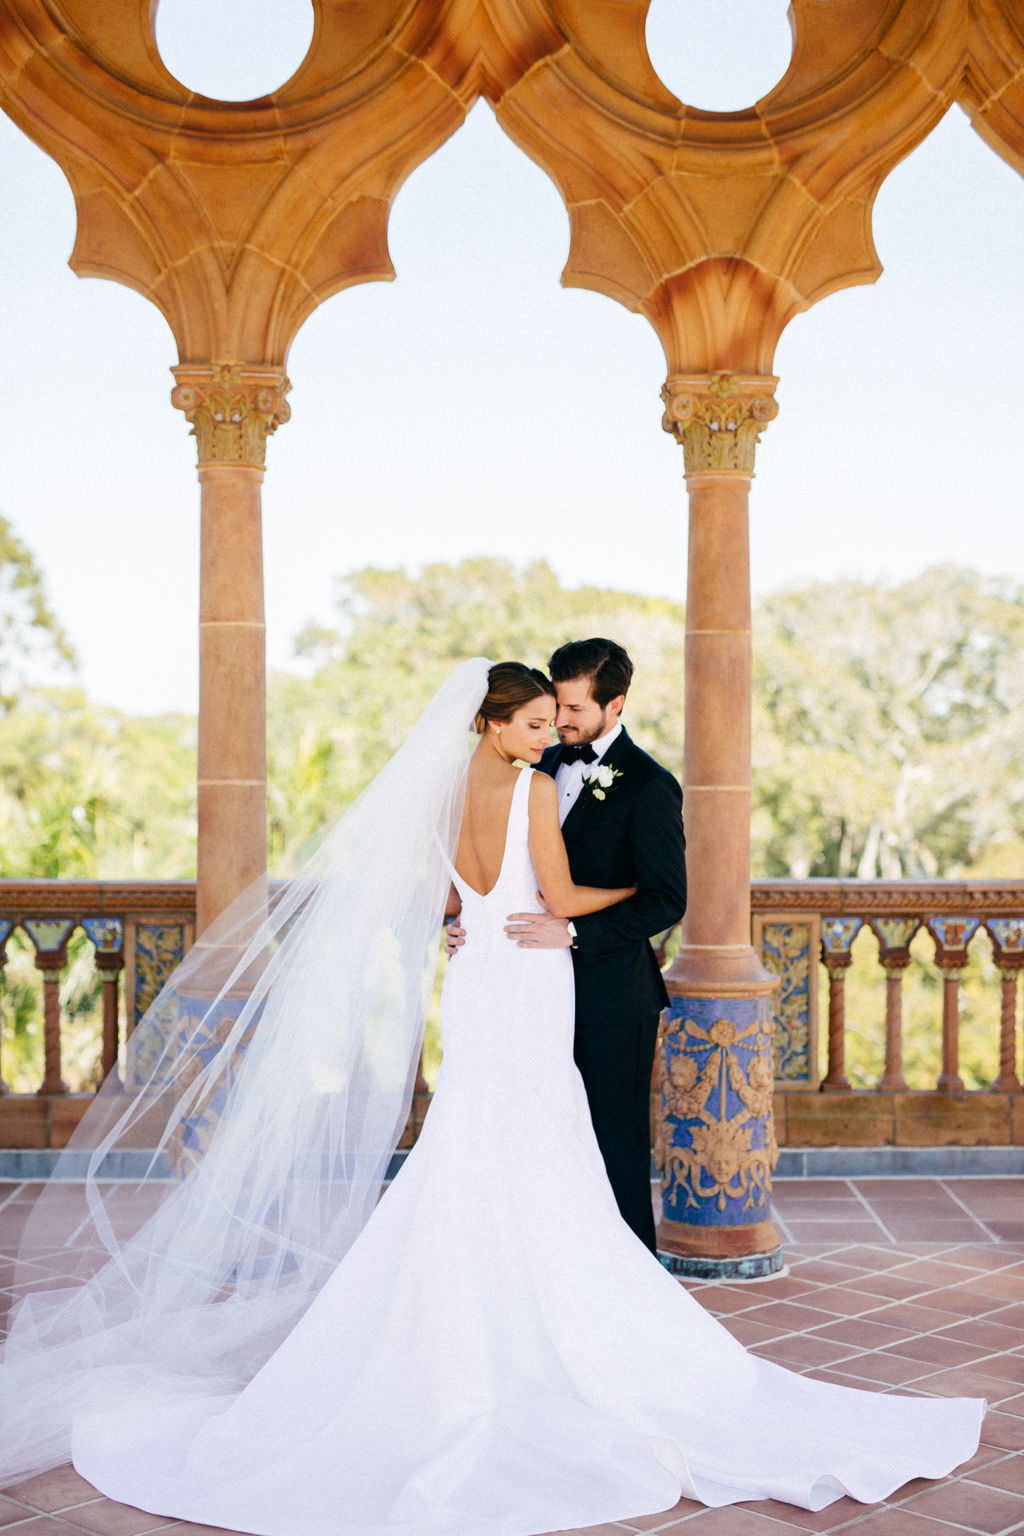 Bride in Classic Silhouette Open Back Wedding Dress and Full Length Veil and Groom First Look Wedding Portrait at Sarasota Waterfront Wedding Venue Ca d'Zan at The Ringling Museum